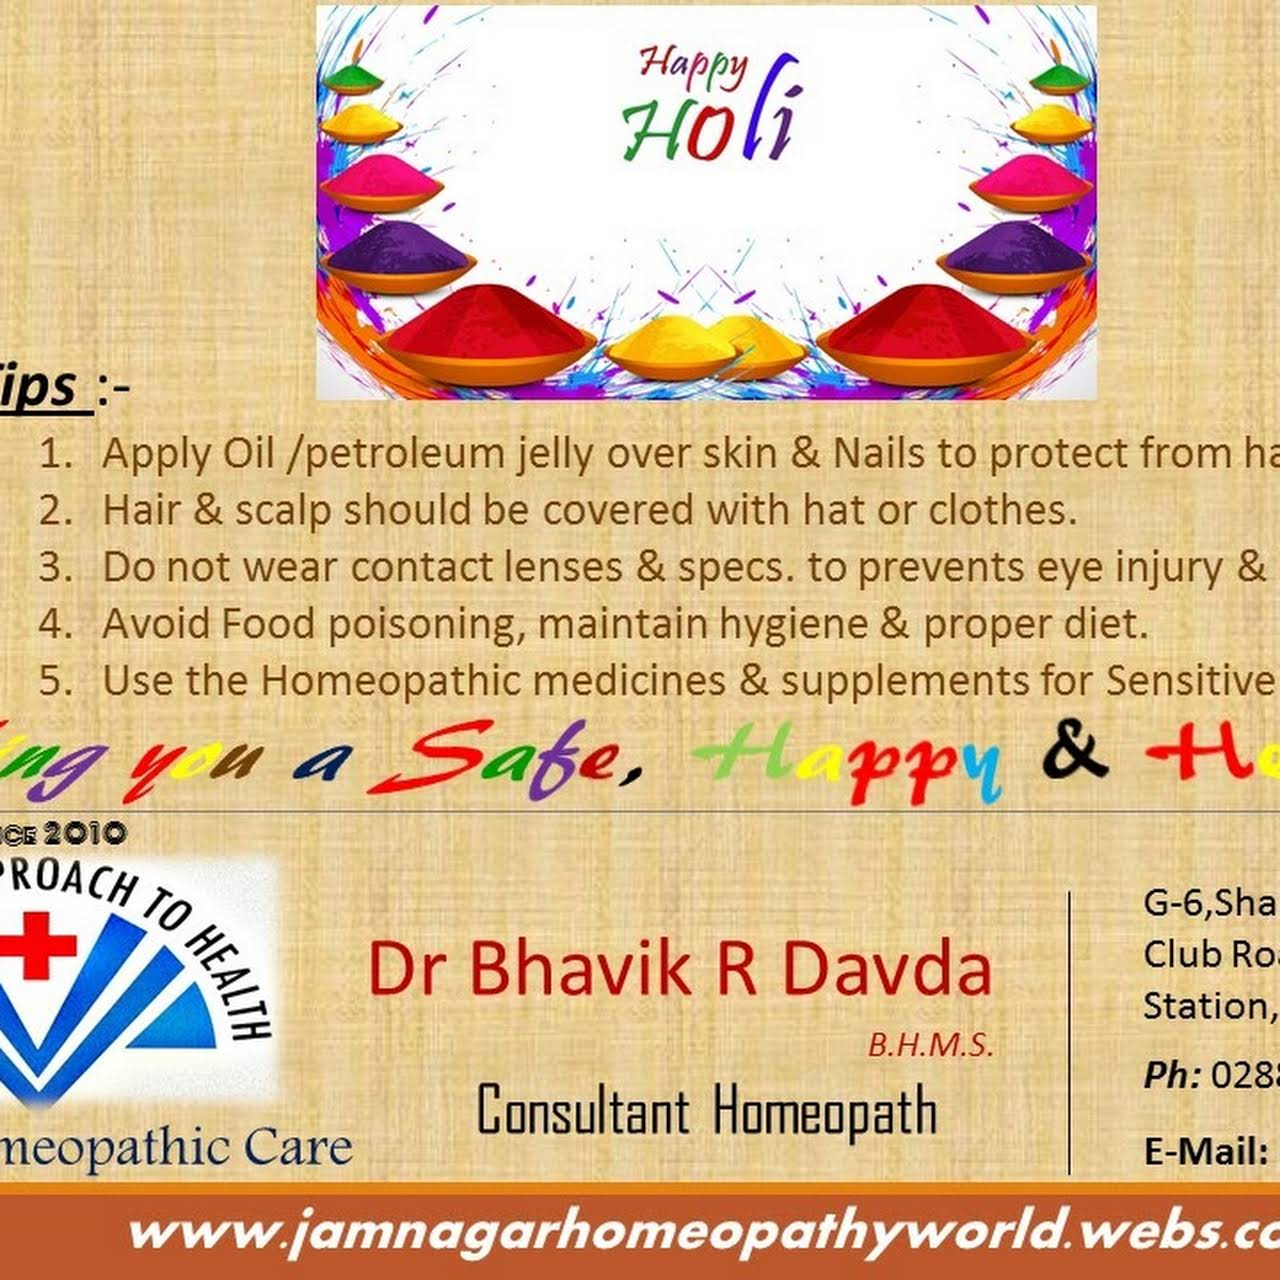 DAVDA Homeopathic Care | Consulting Homeopathy | Clinic